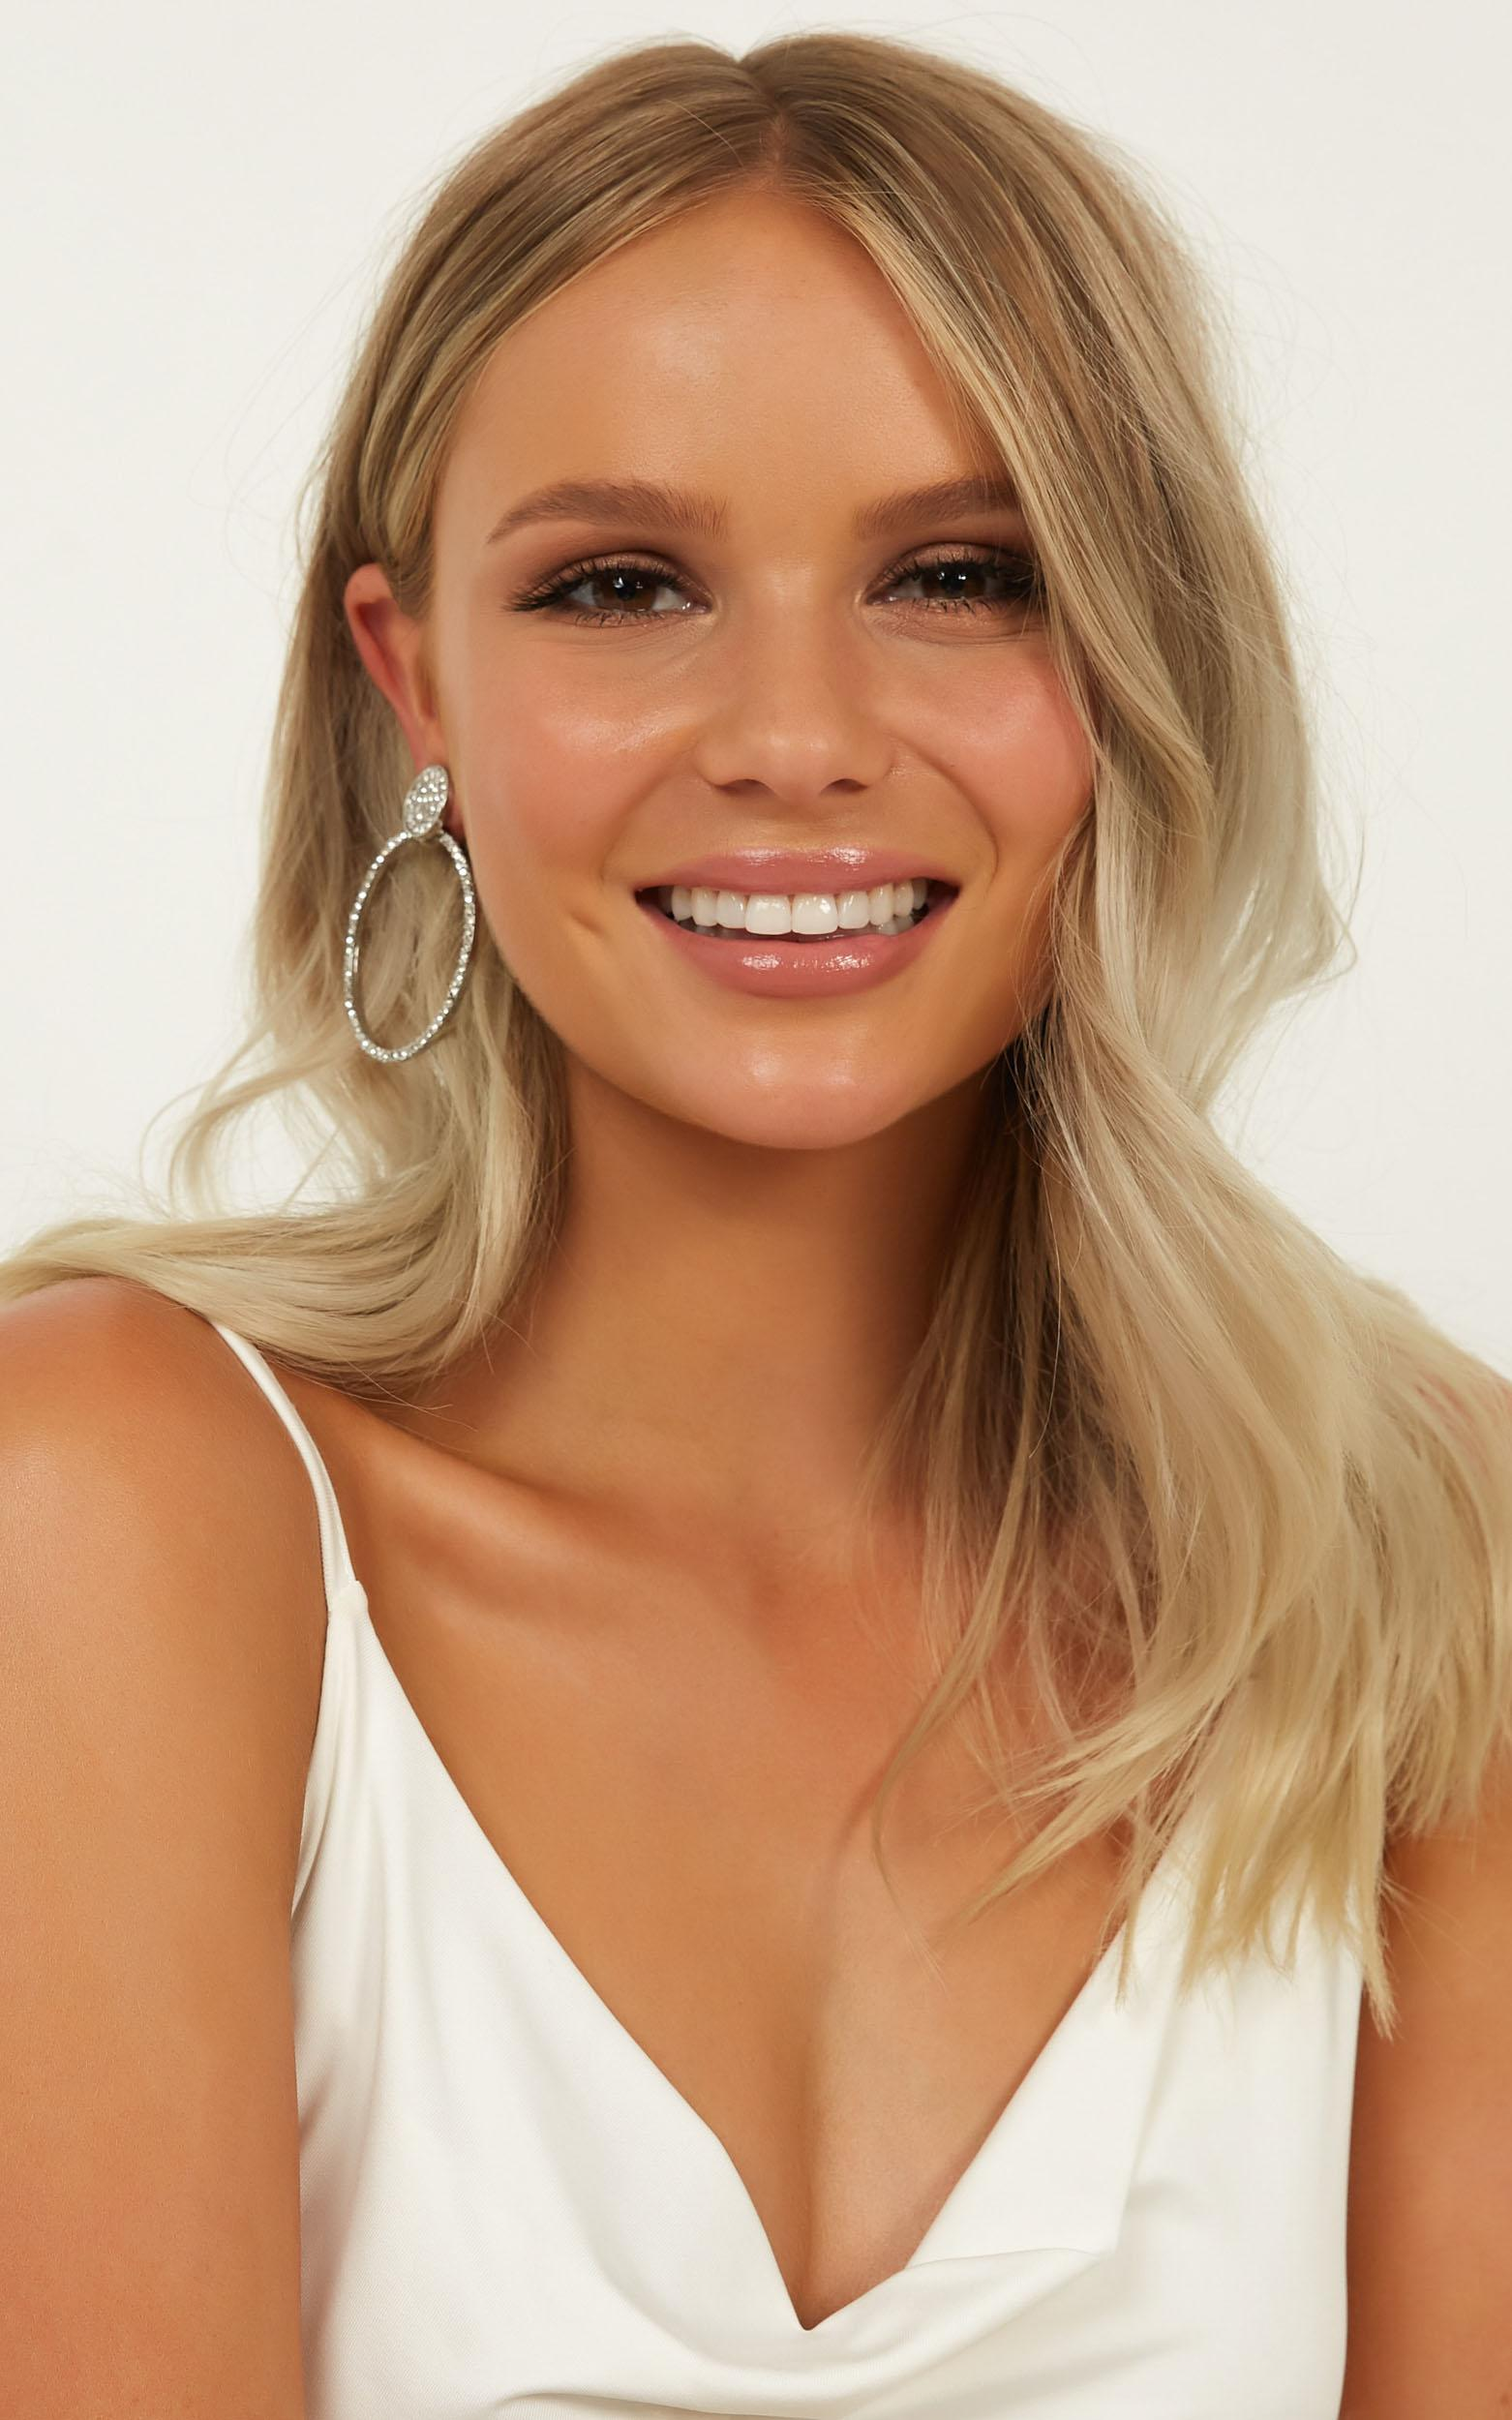 Cant Help Loving Earrings In Silver, , hi-res image number null